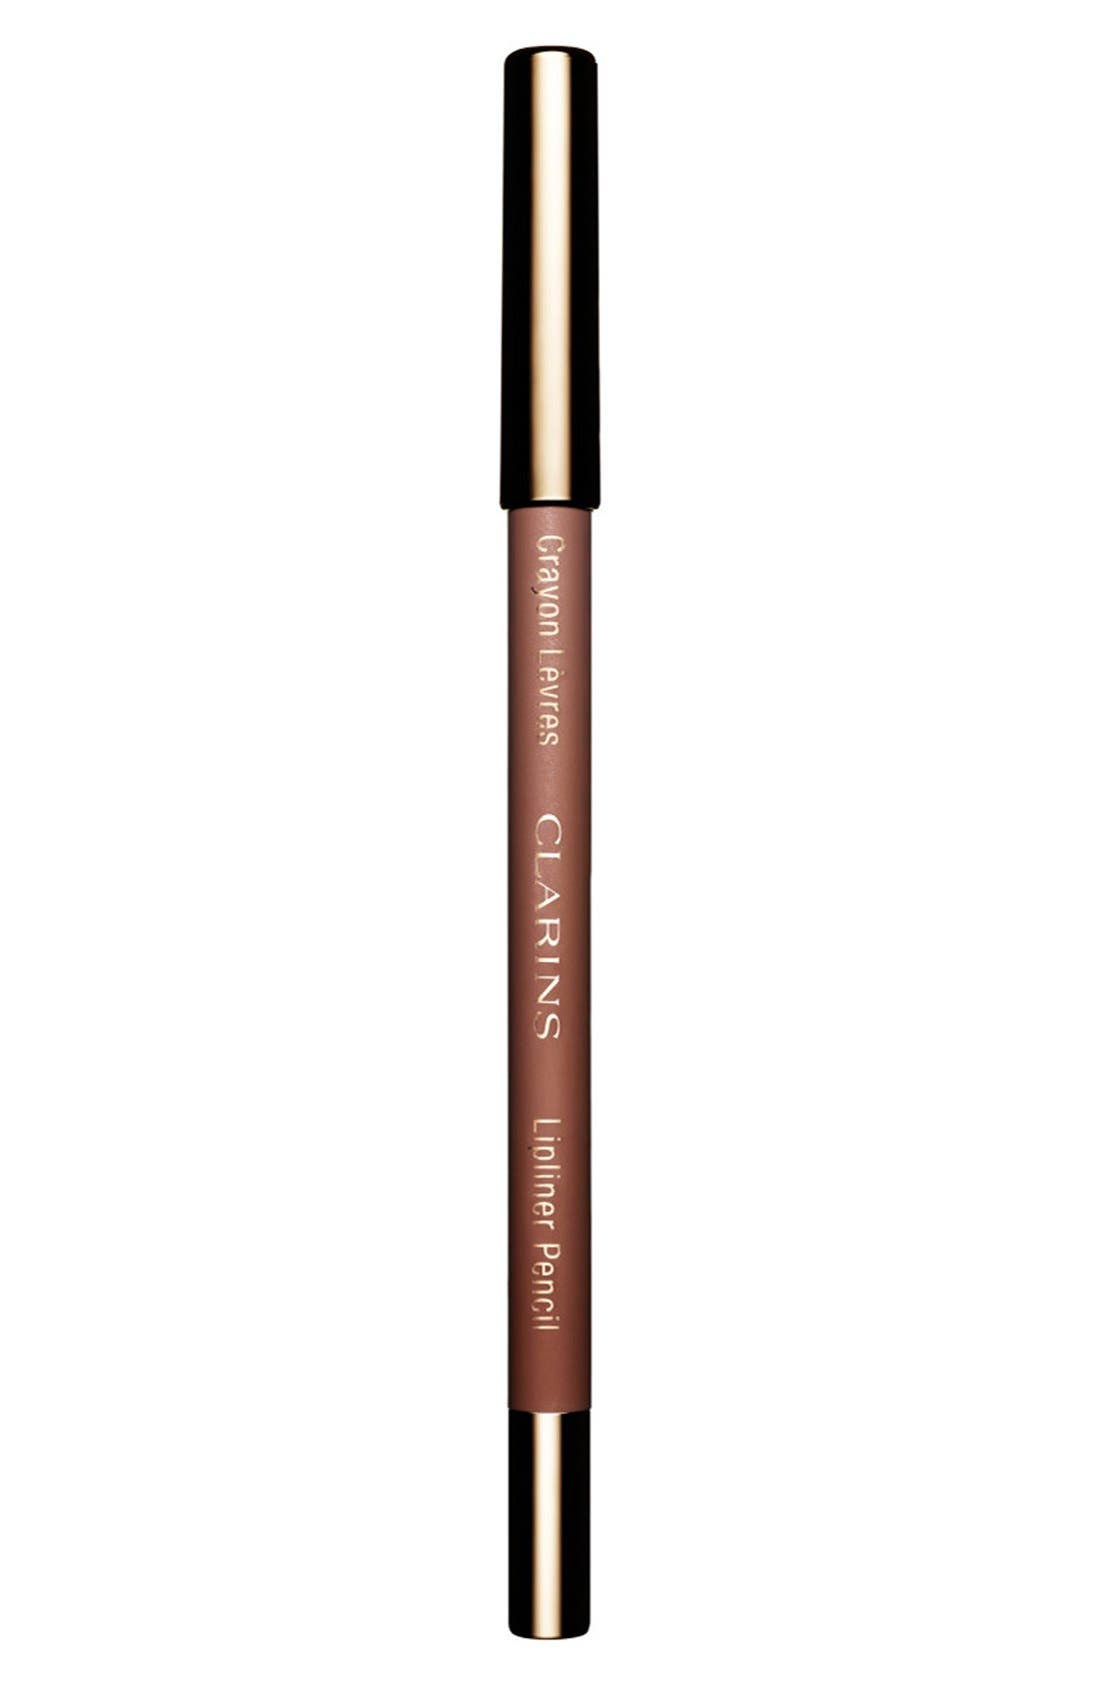 Lip Pencil,                         Main,                         color, 01 NUDE FAIR